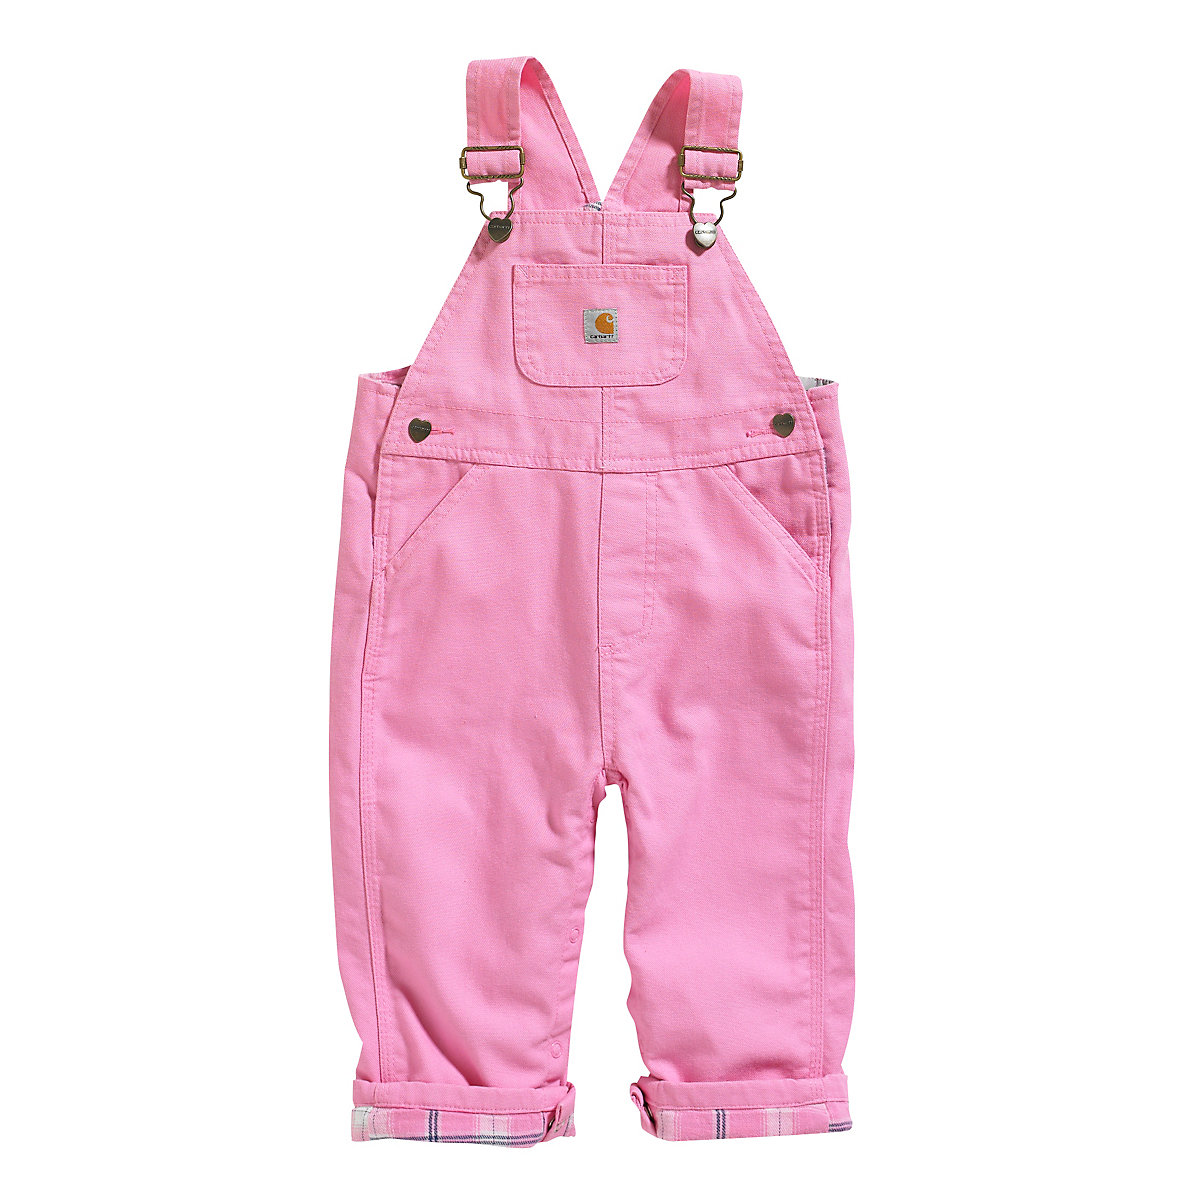 Cute pair of girls skinny stretch Blue Jean Bib overalls with factory fade and distress. 20